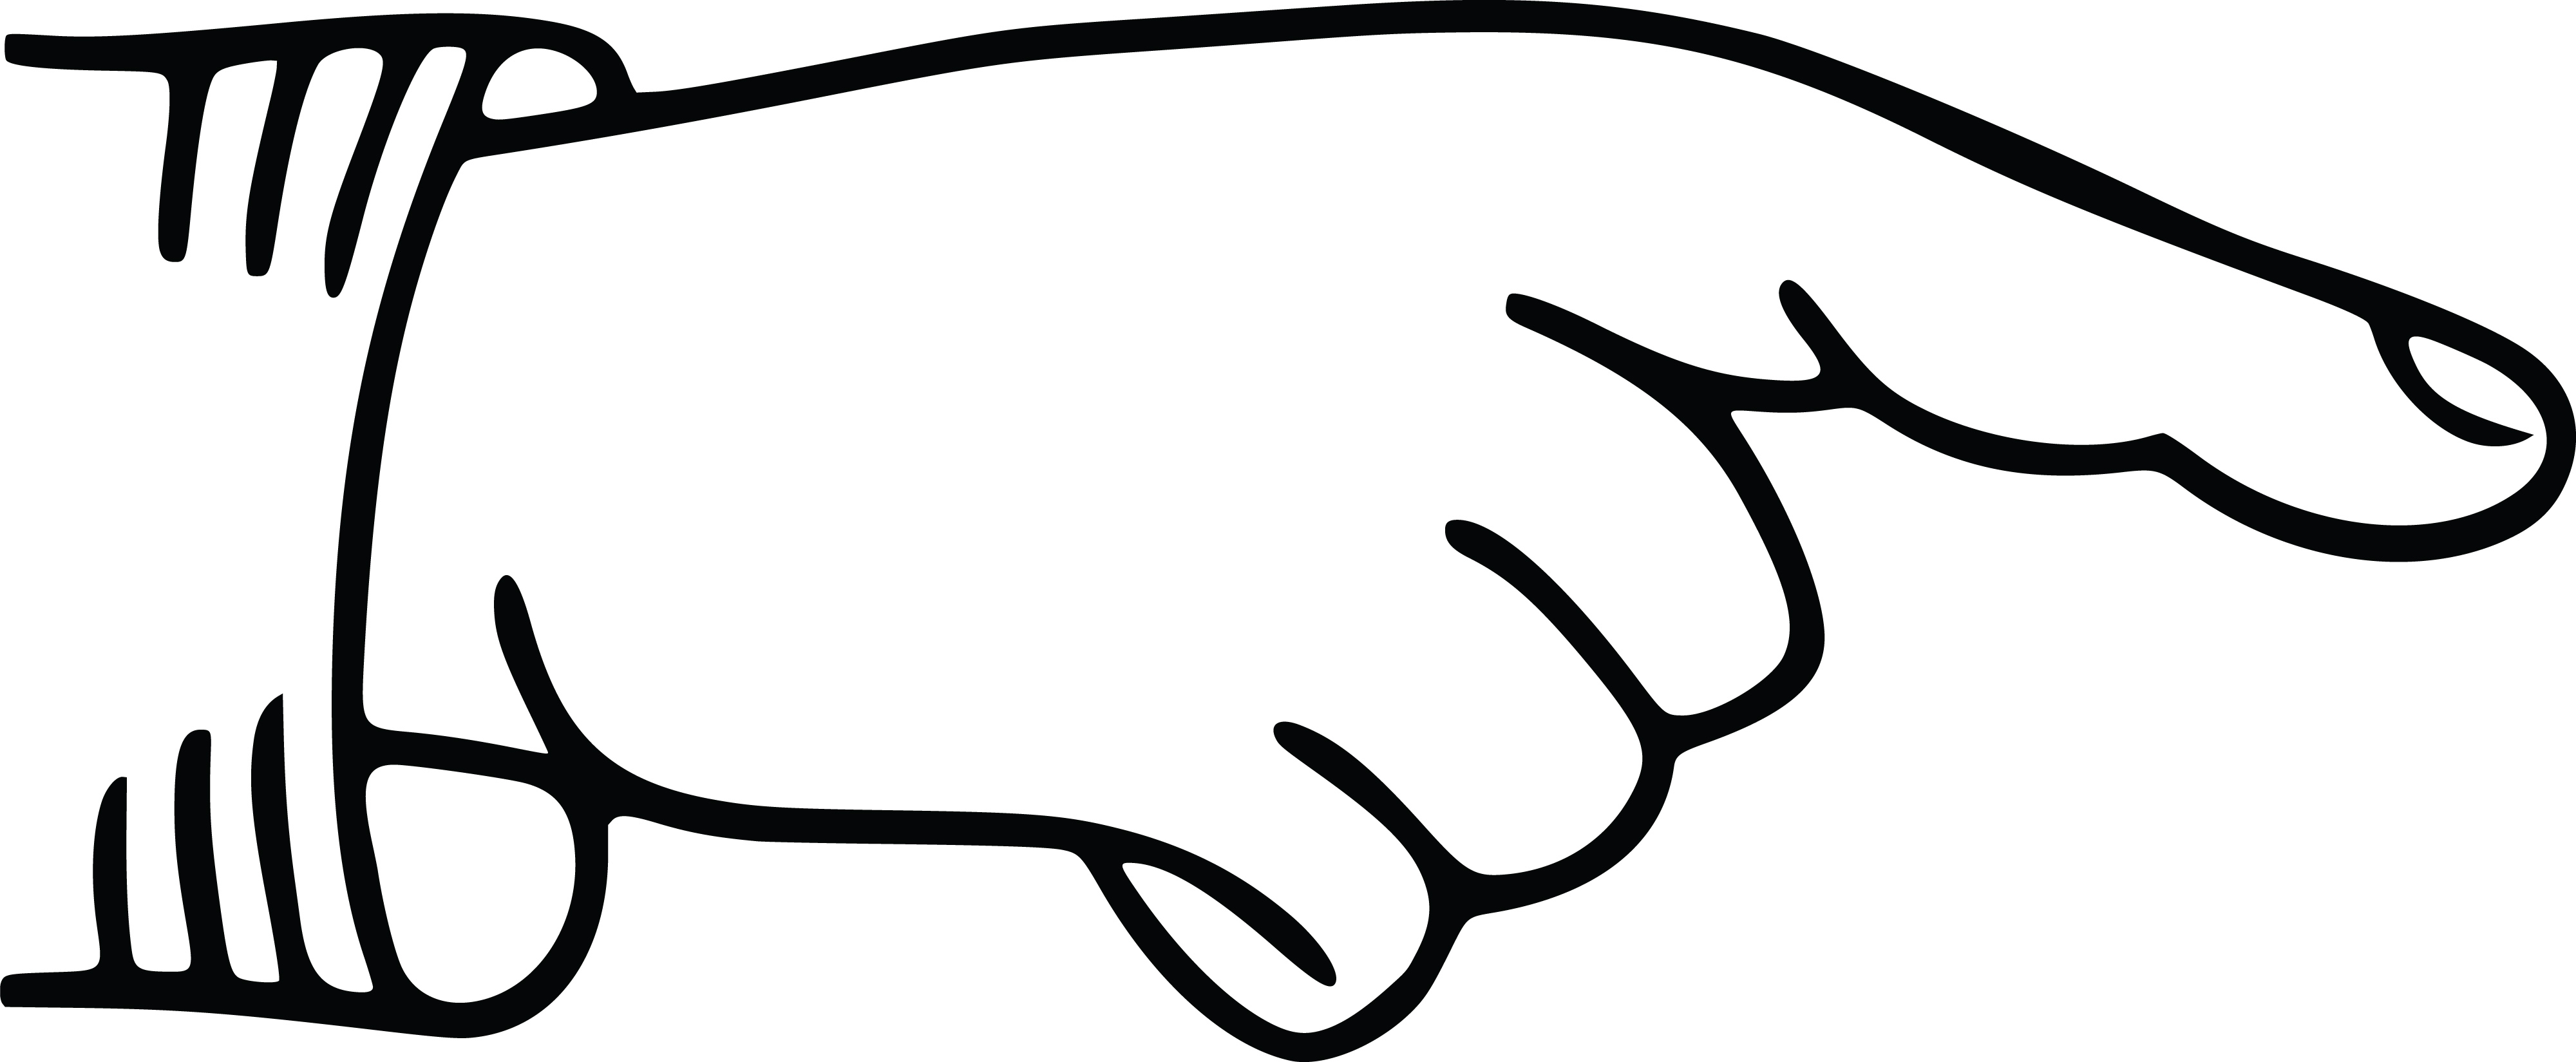 4000x1649 Clipart Of A Hand Pointing A Finger, Black White